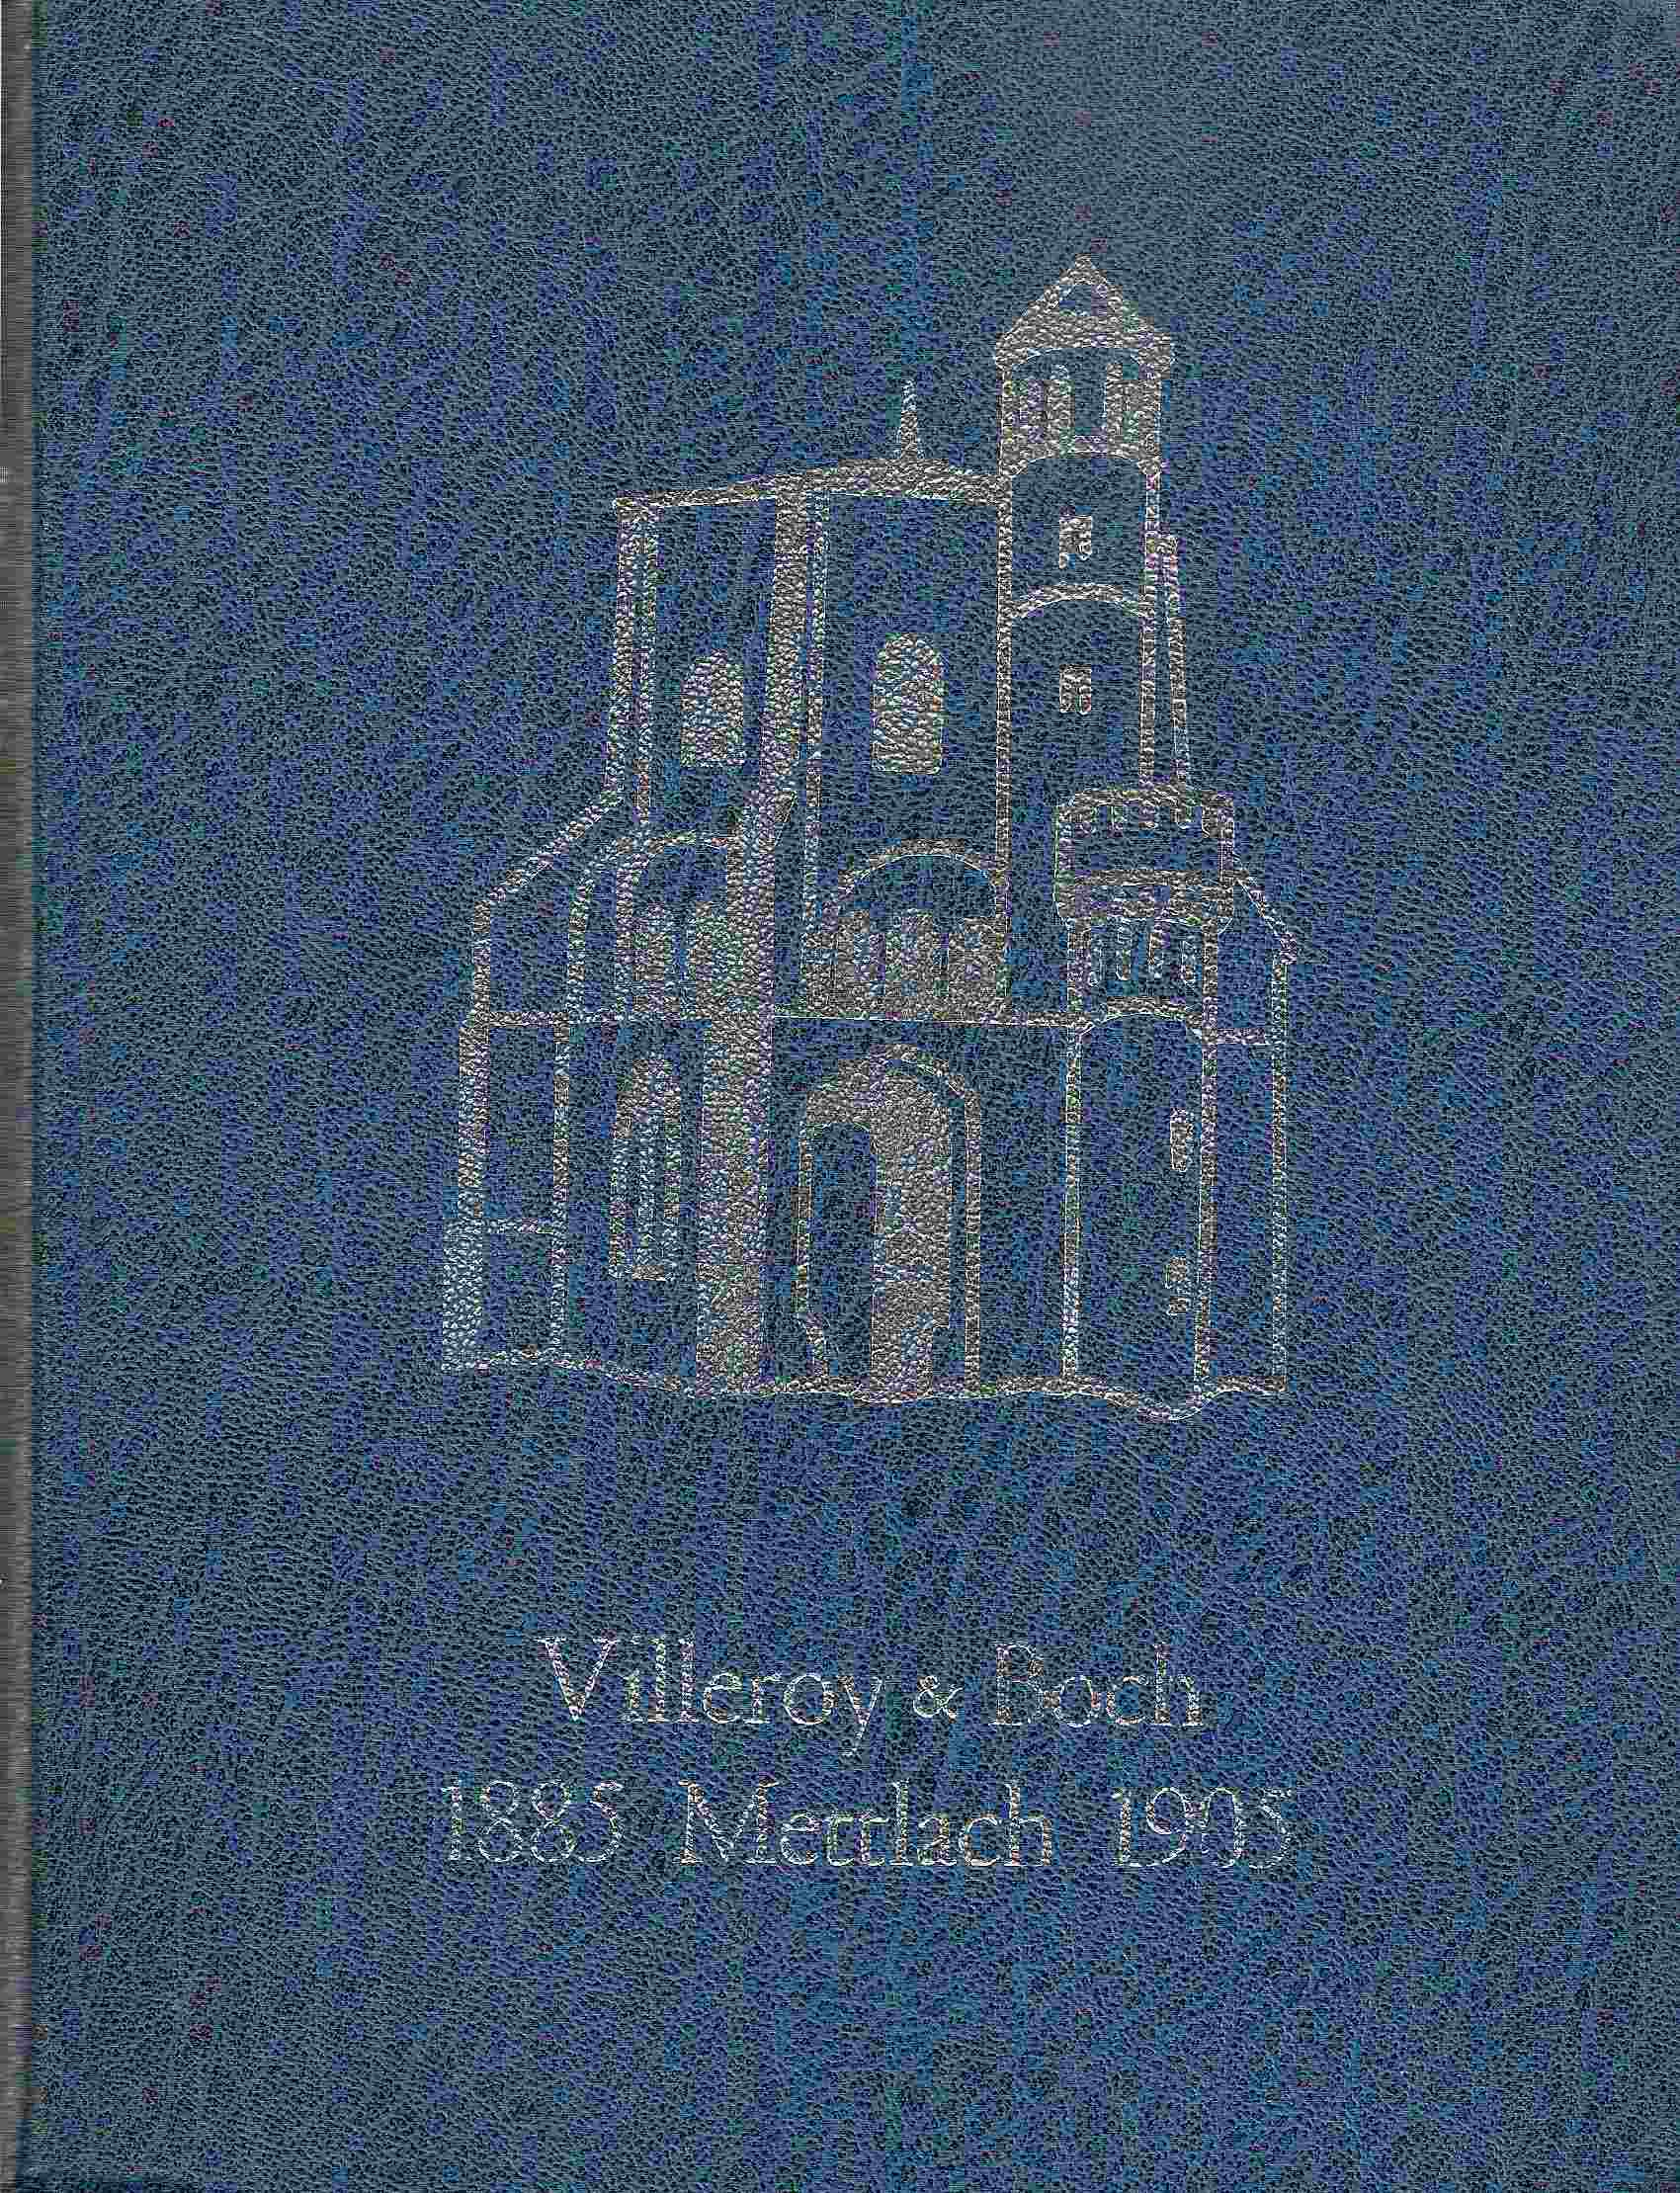 Image for 1885 Mettlach 1905; VILLEROY & BOCH